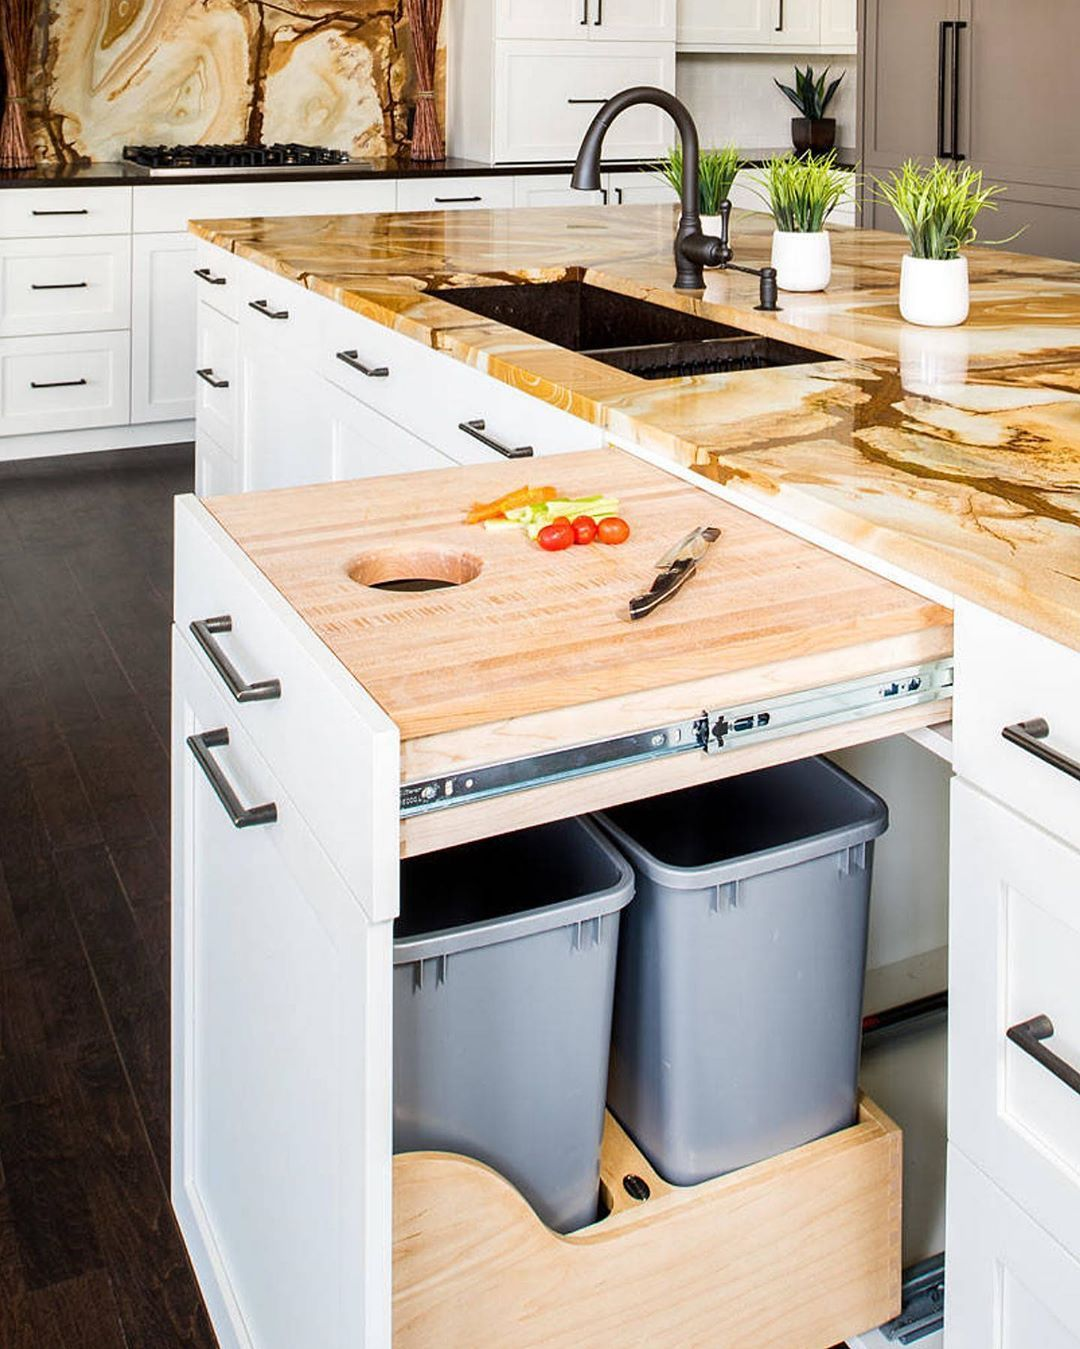 Pin On Clever Home Ideas